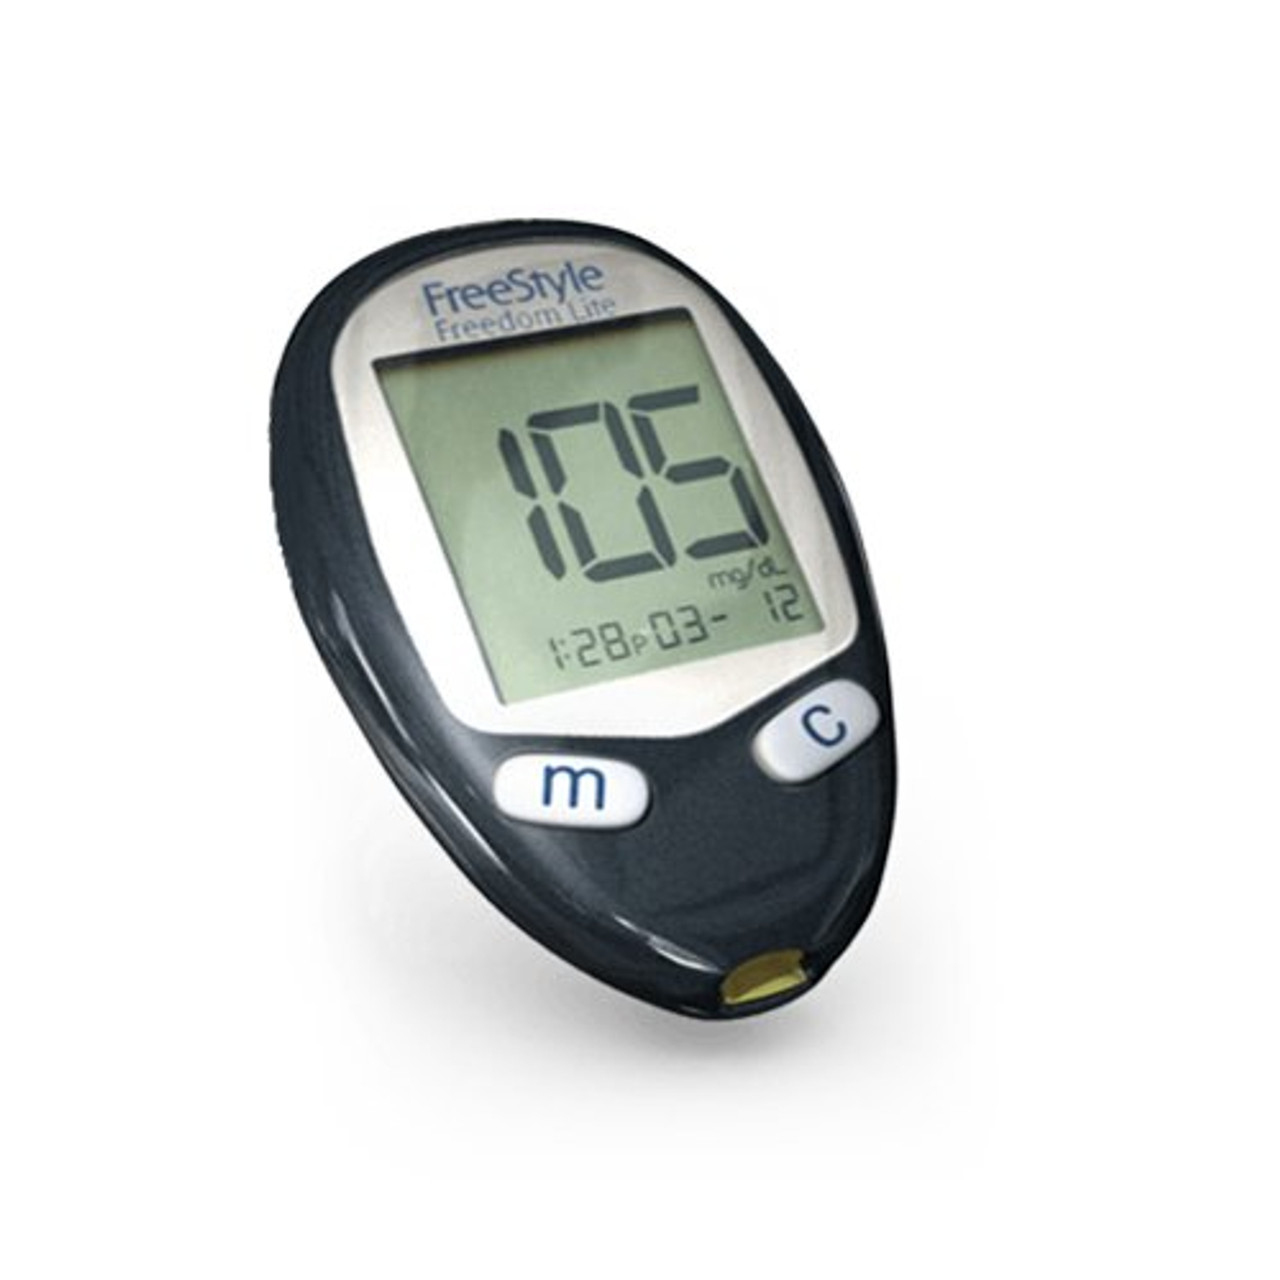 Abbott Freedom Lite abbott freestyle freedom lite blood glucose meter only for glucose care